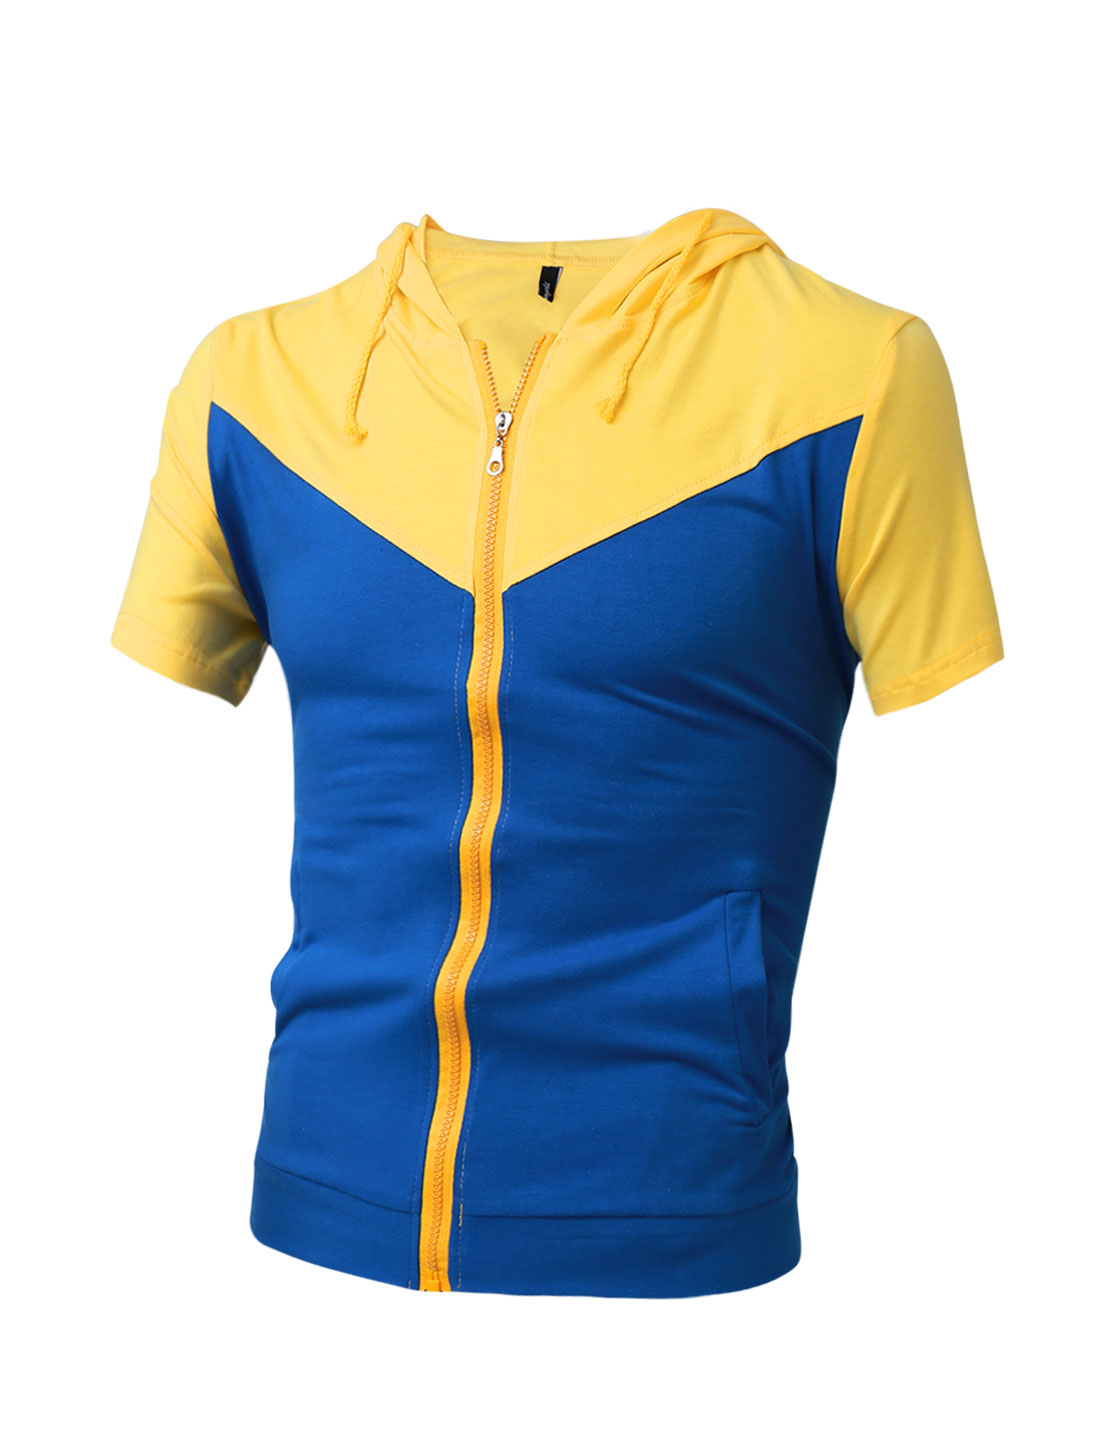 Men Yellow Blue Zipper Short Sleeve Slant Pocket Sweatshirt M